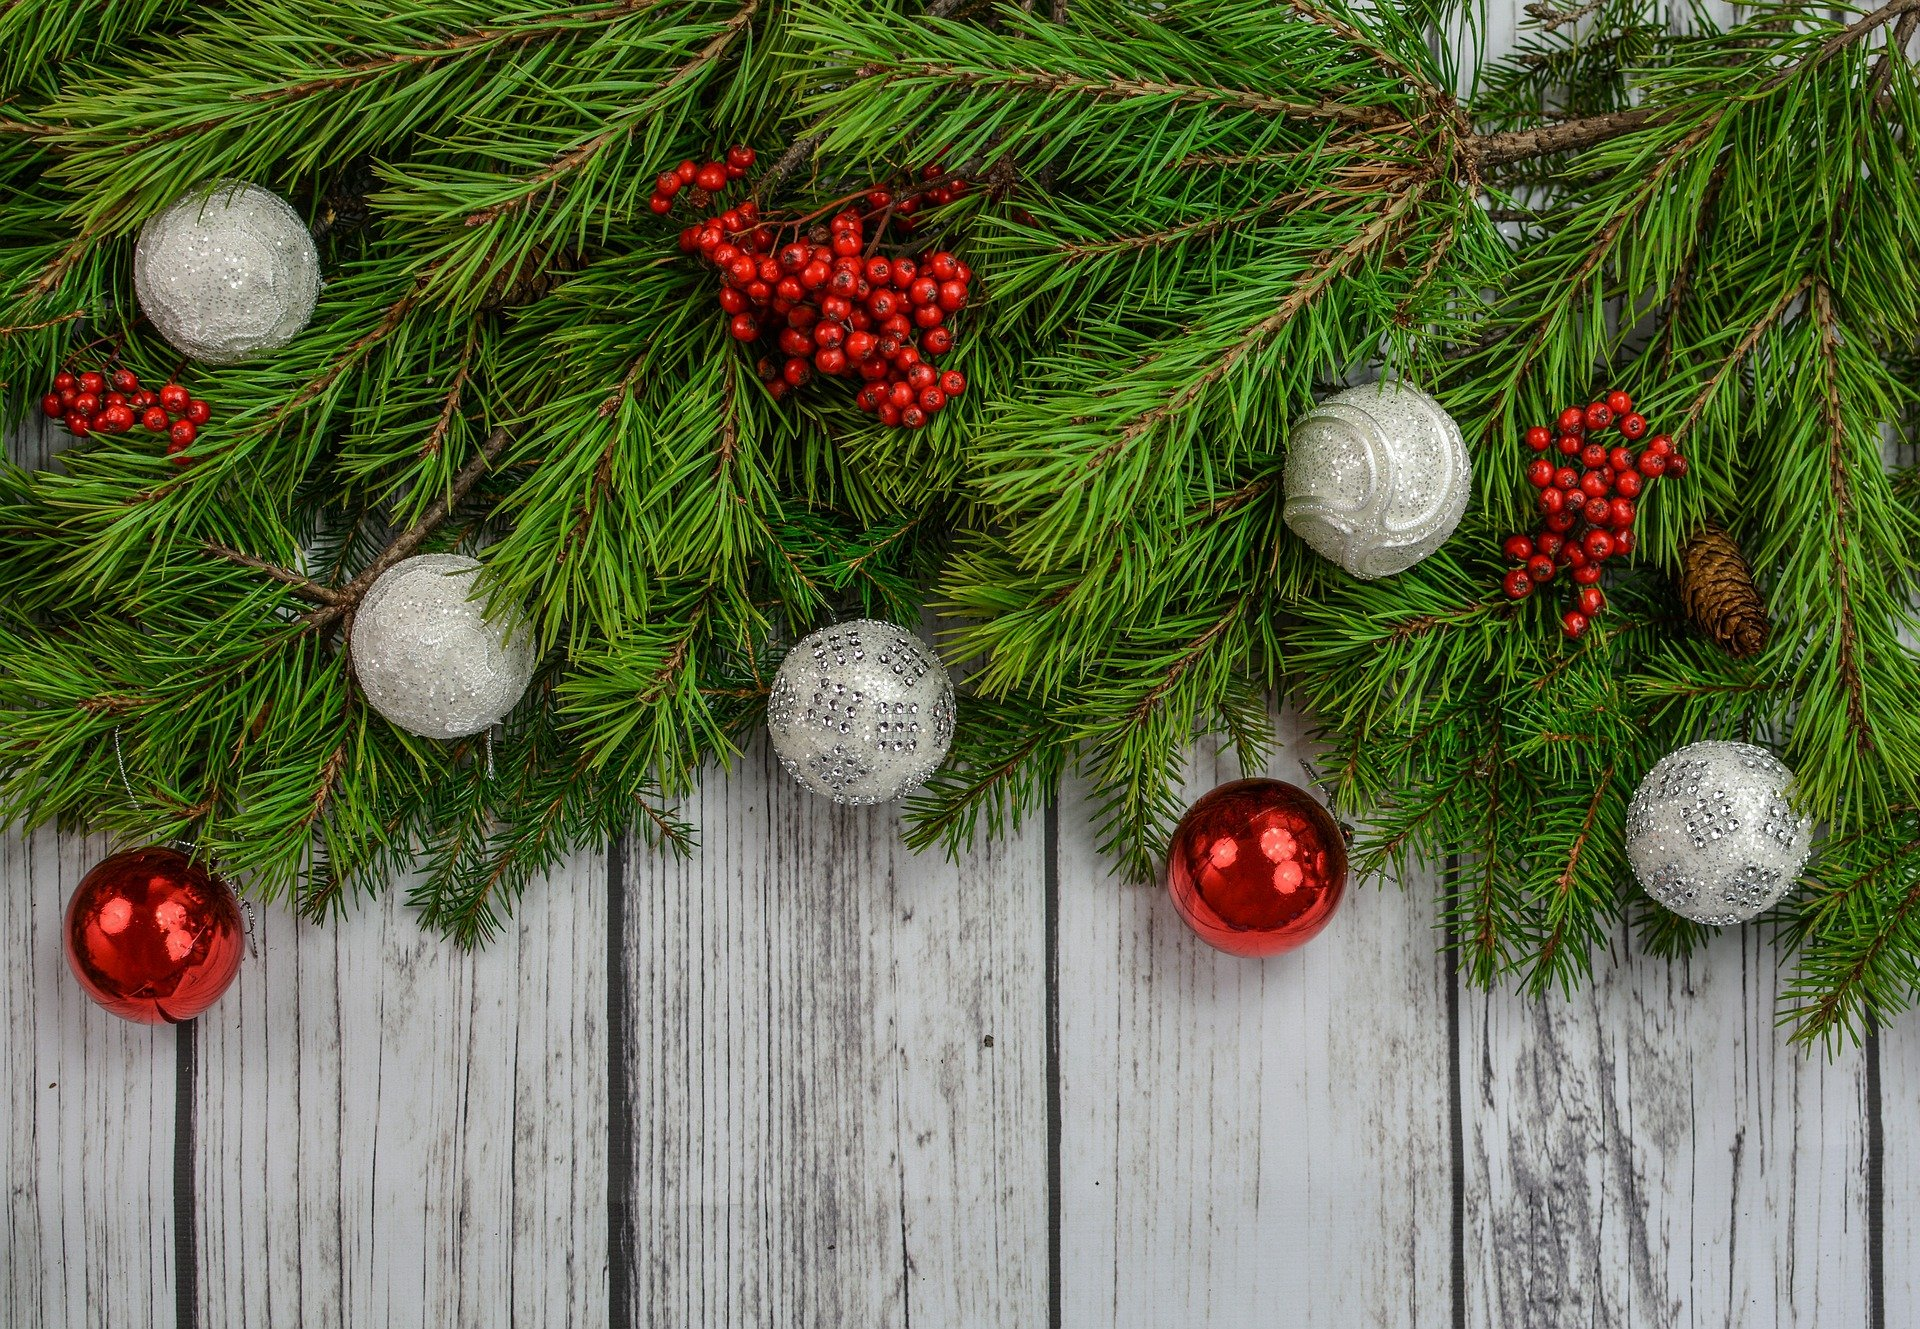 Heartache During The Holidays: A Time Of Reflection